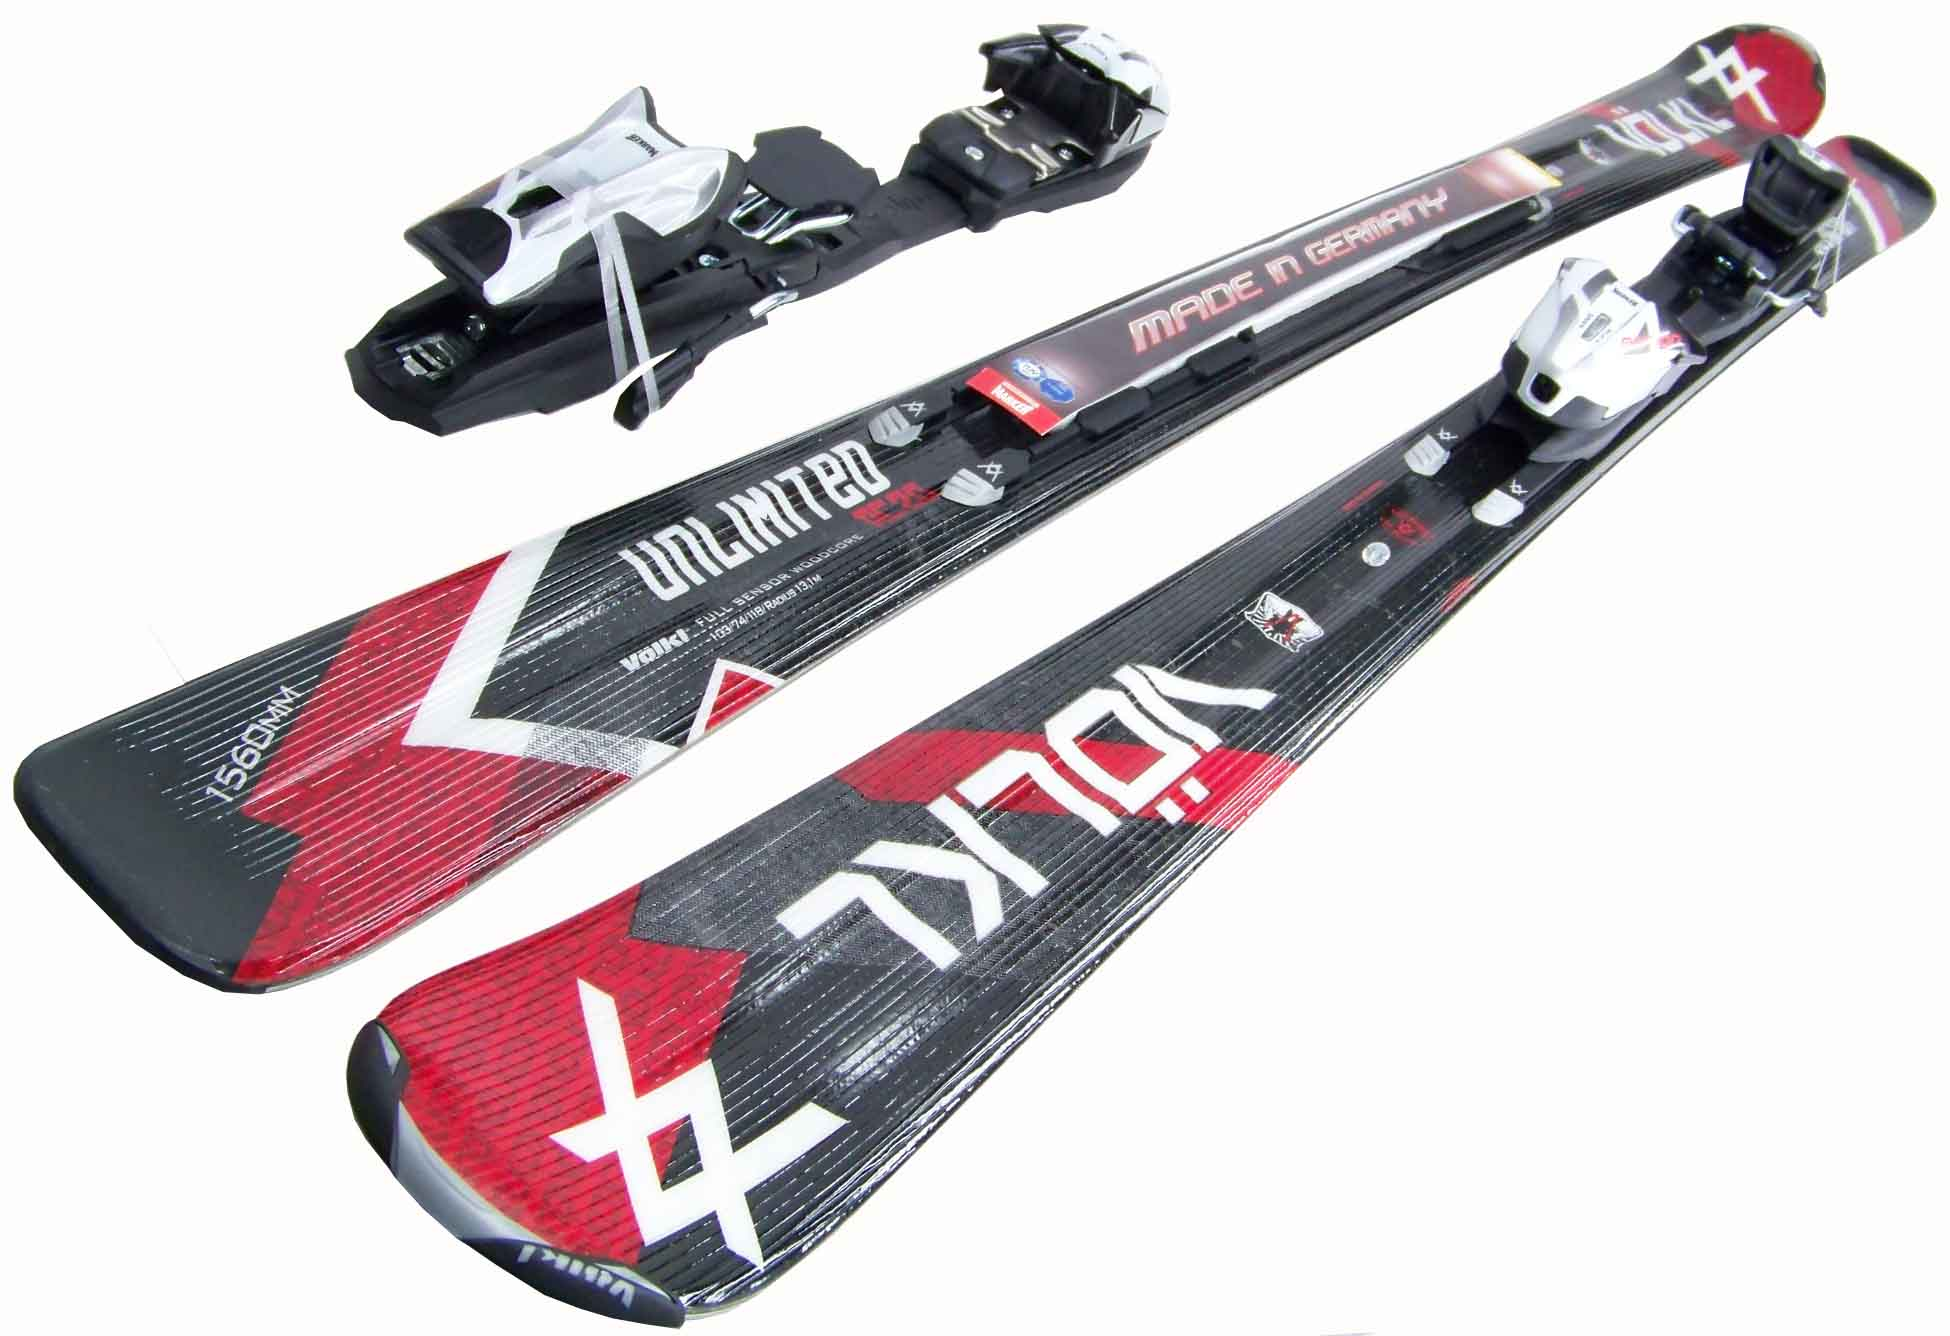 VÖlkl unlimited ac skiset allround carver alpin carving